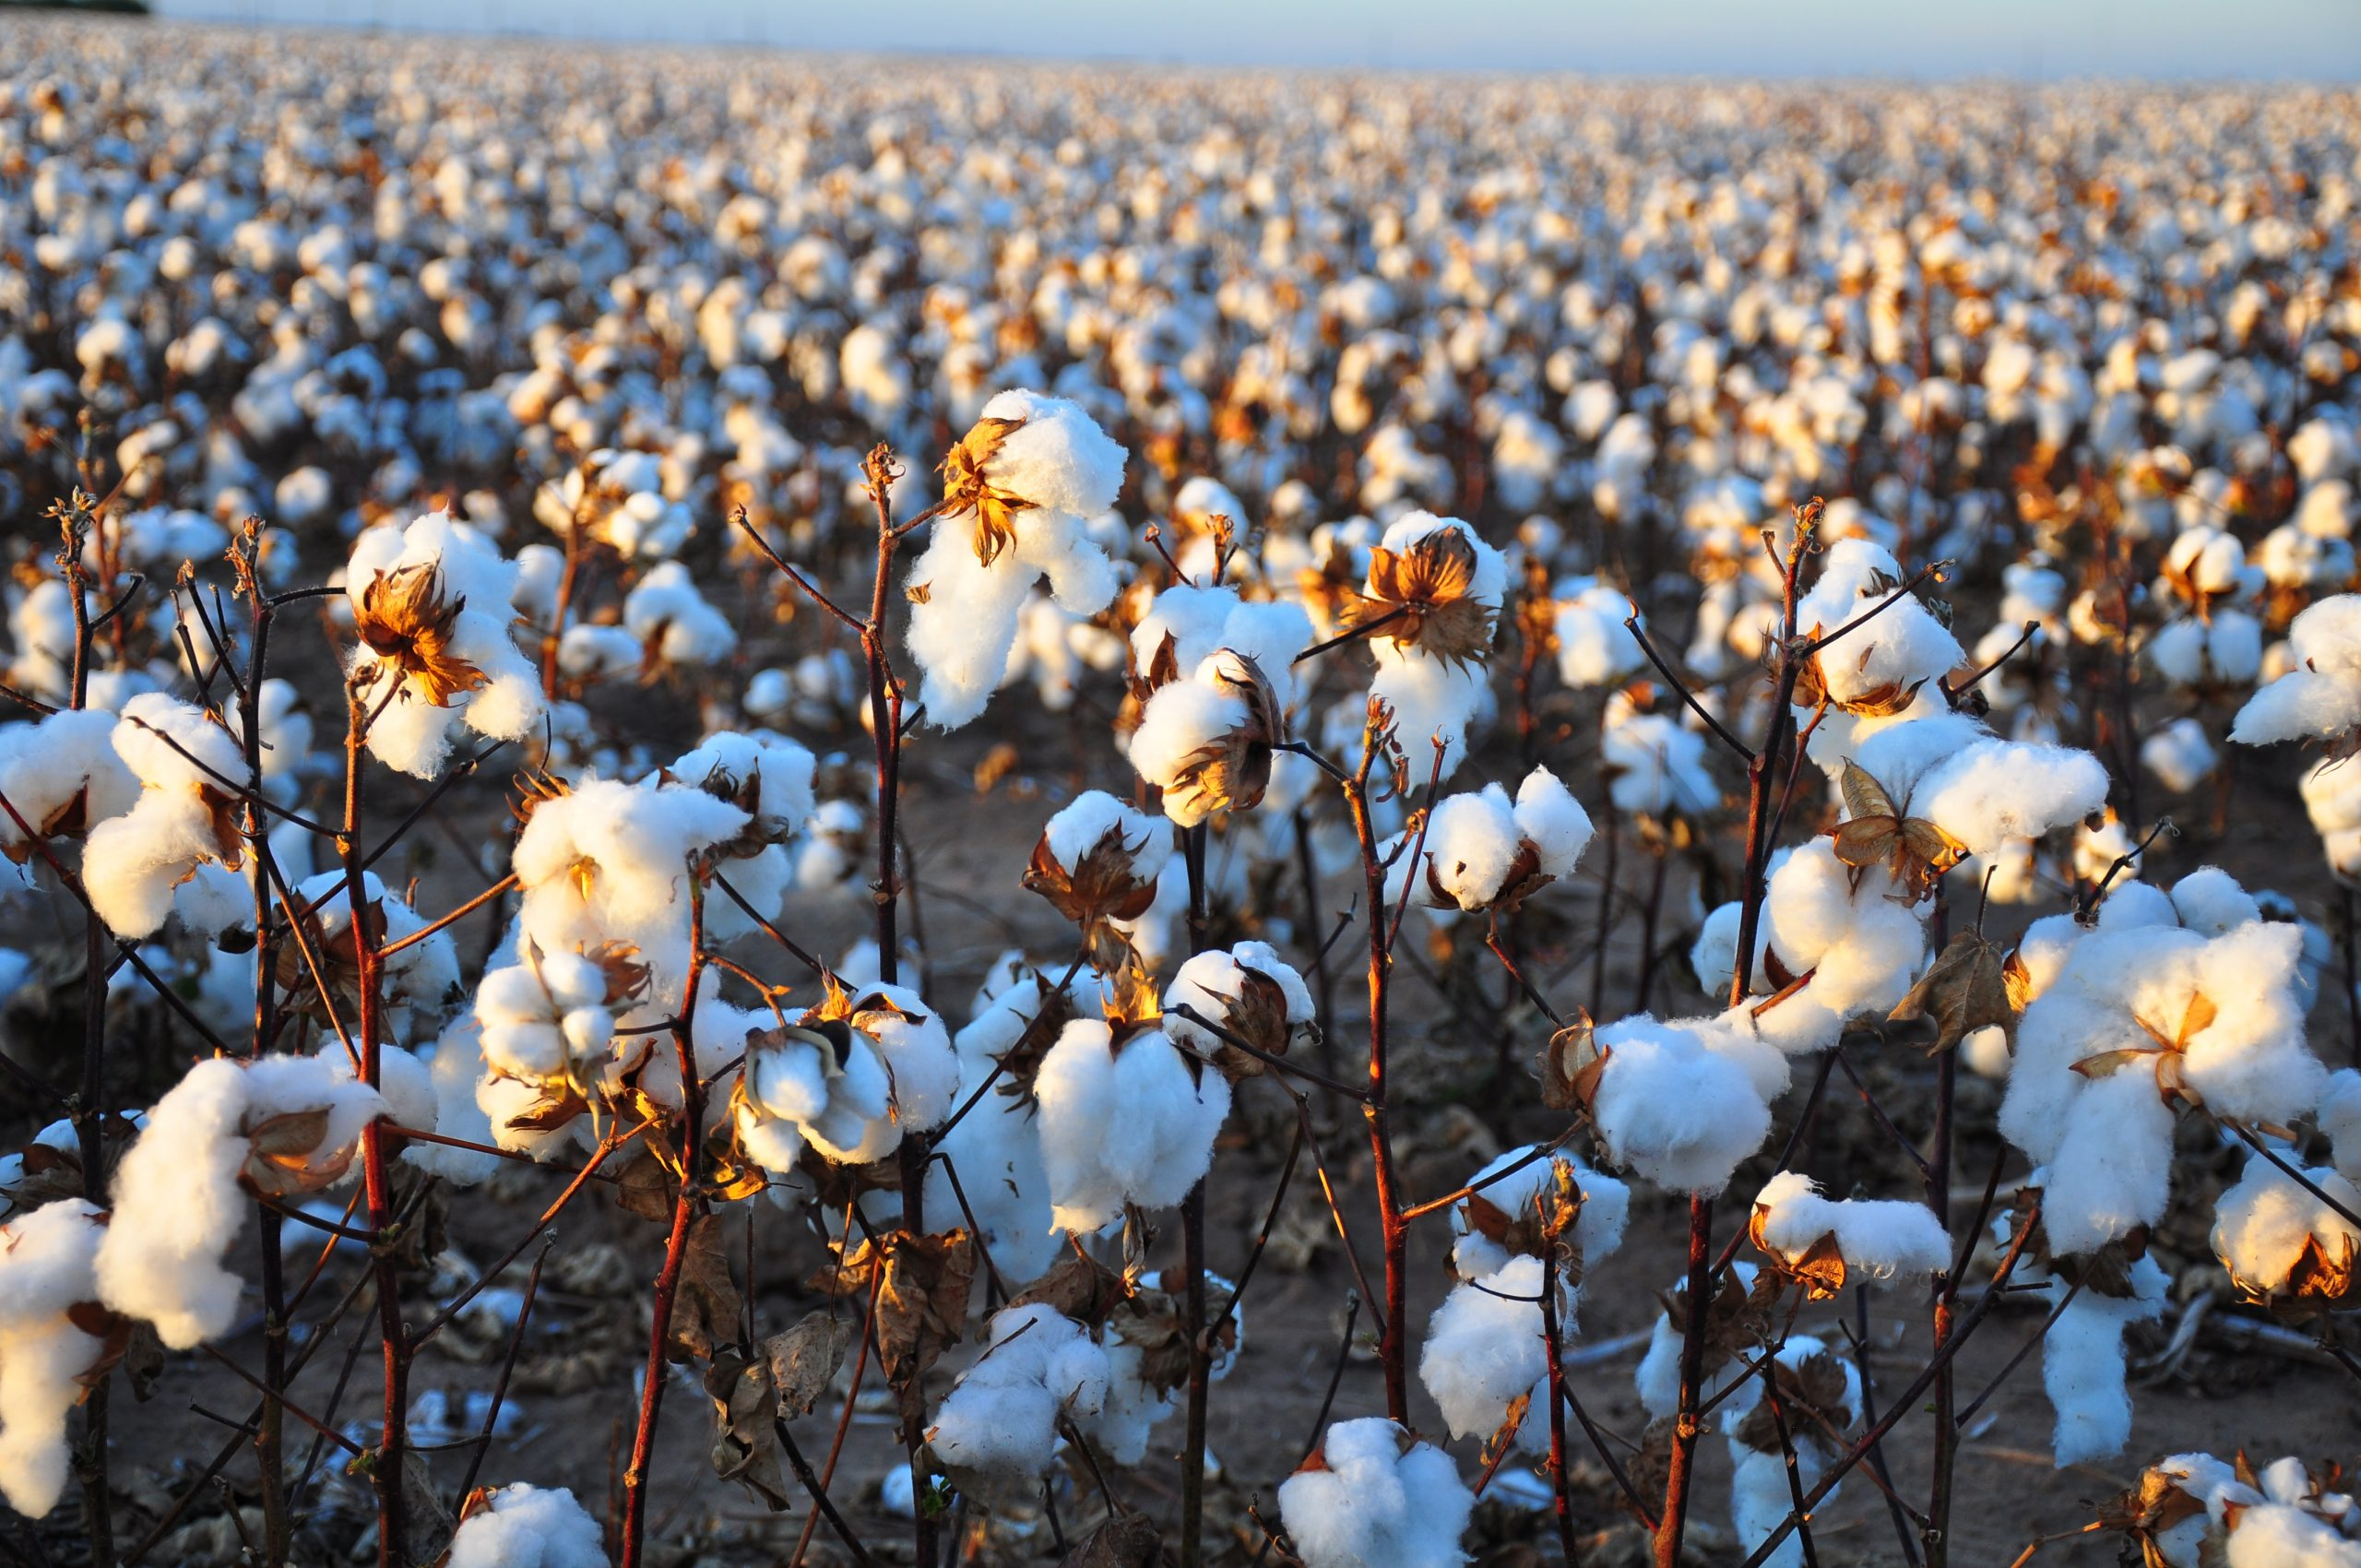 Cotton Consumption Is Expected To Grow Globally, According To The USDA